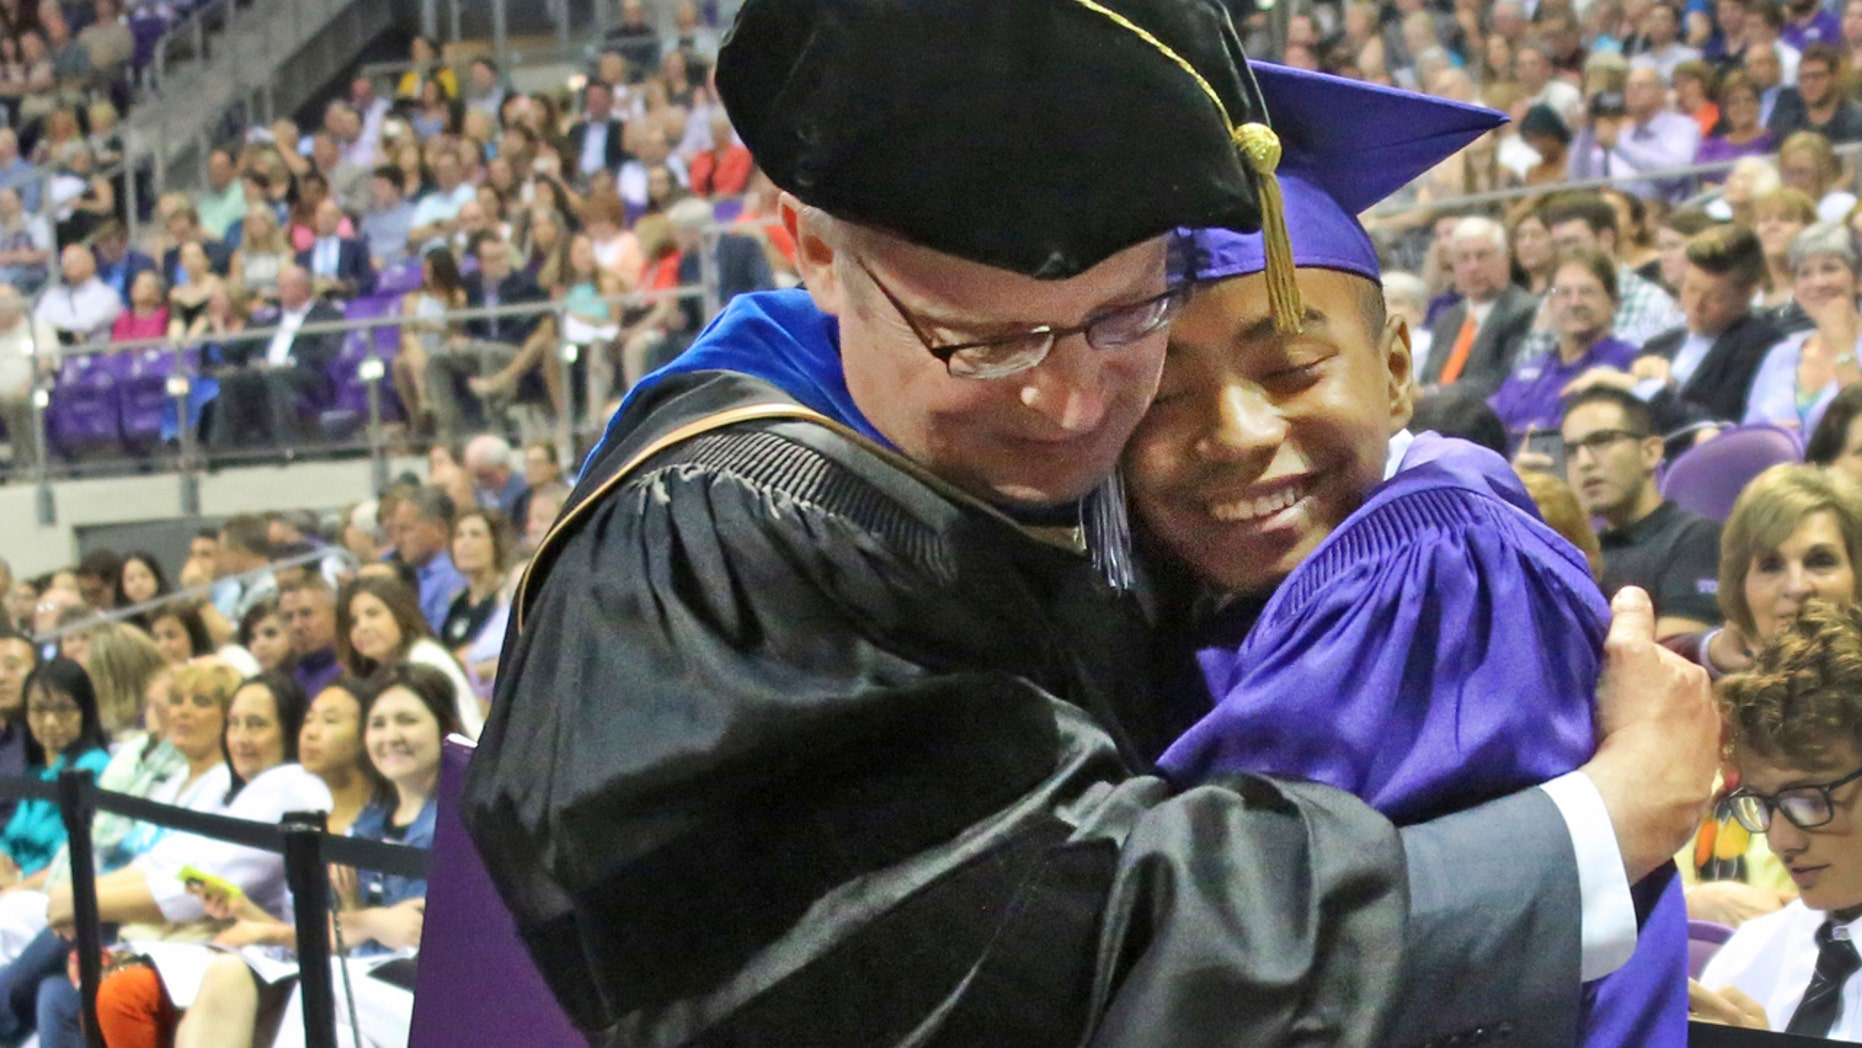 Fourteen year old Carson Huey-You gets a hug from his mentor, physics professor Magnus Rittby, after receiving a bachelor's degree in physics at the Texas Christian University commencement held in Fort Worth on Saturday, May 13, 2017.